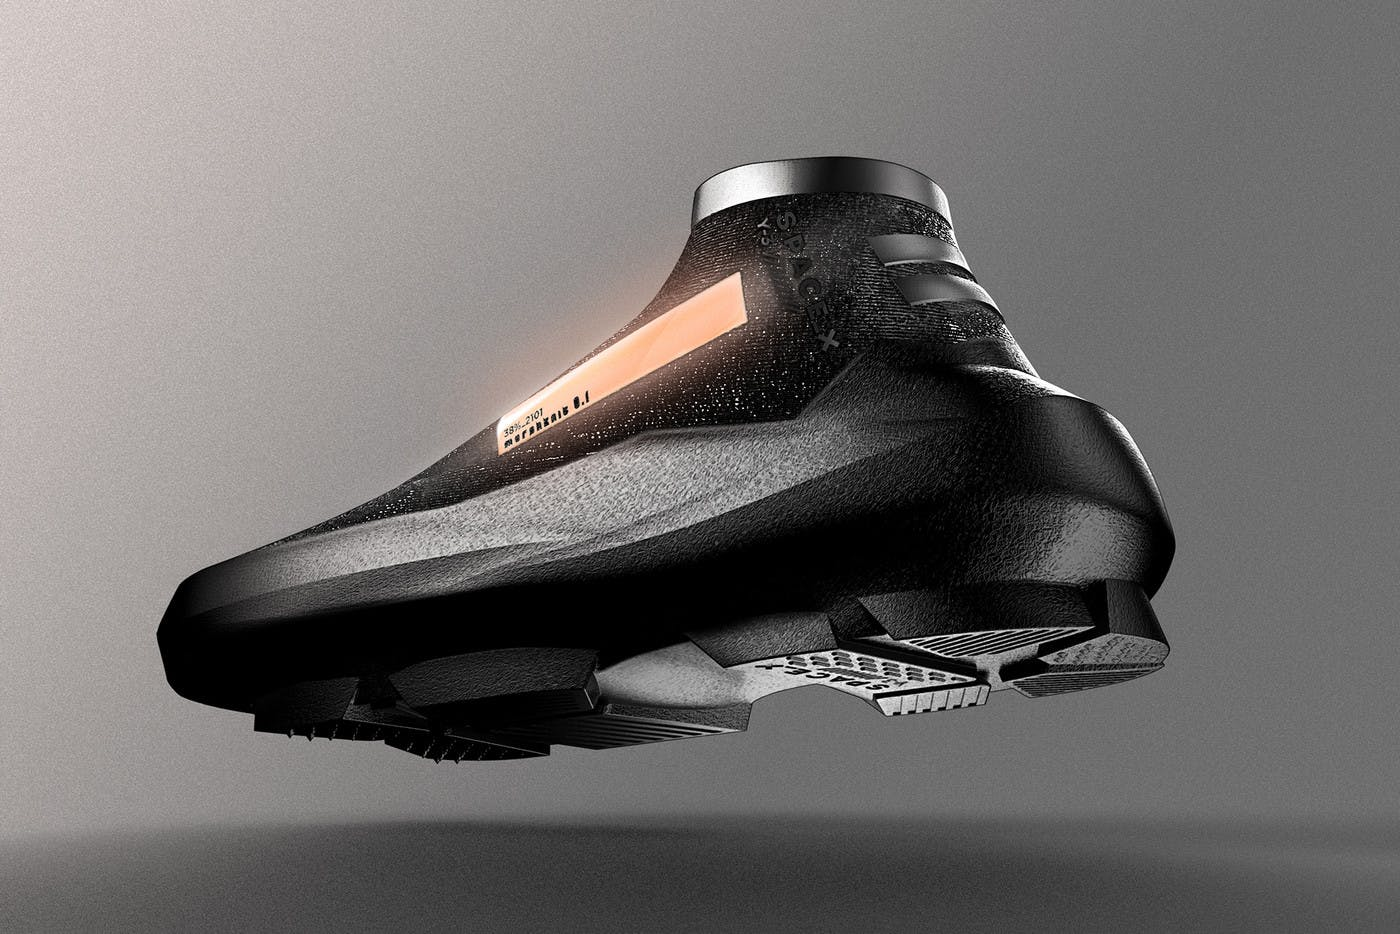 Elon Musk SpaceX: Y-3 x SpaceX sneaker concept.